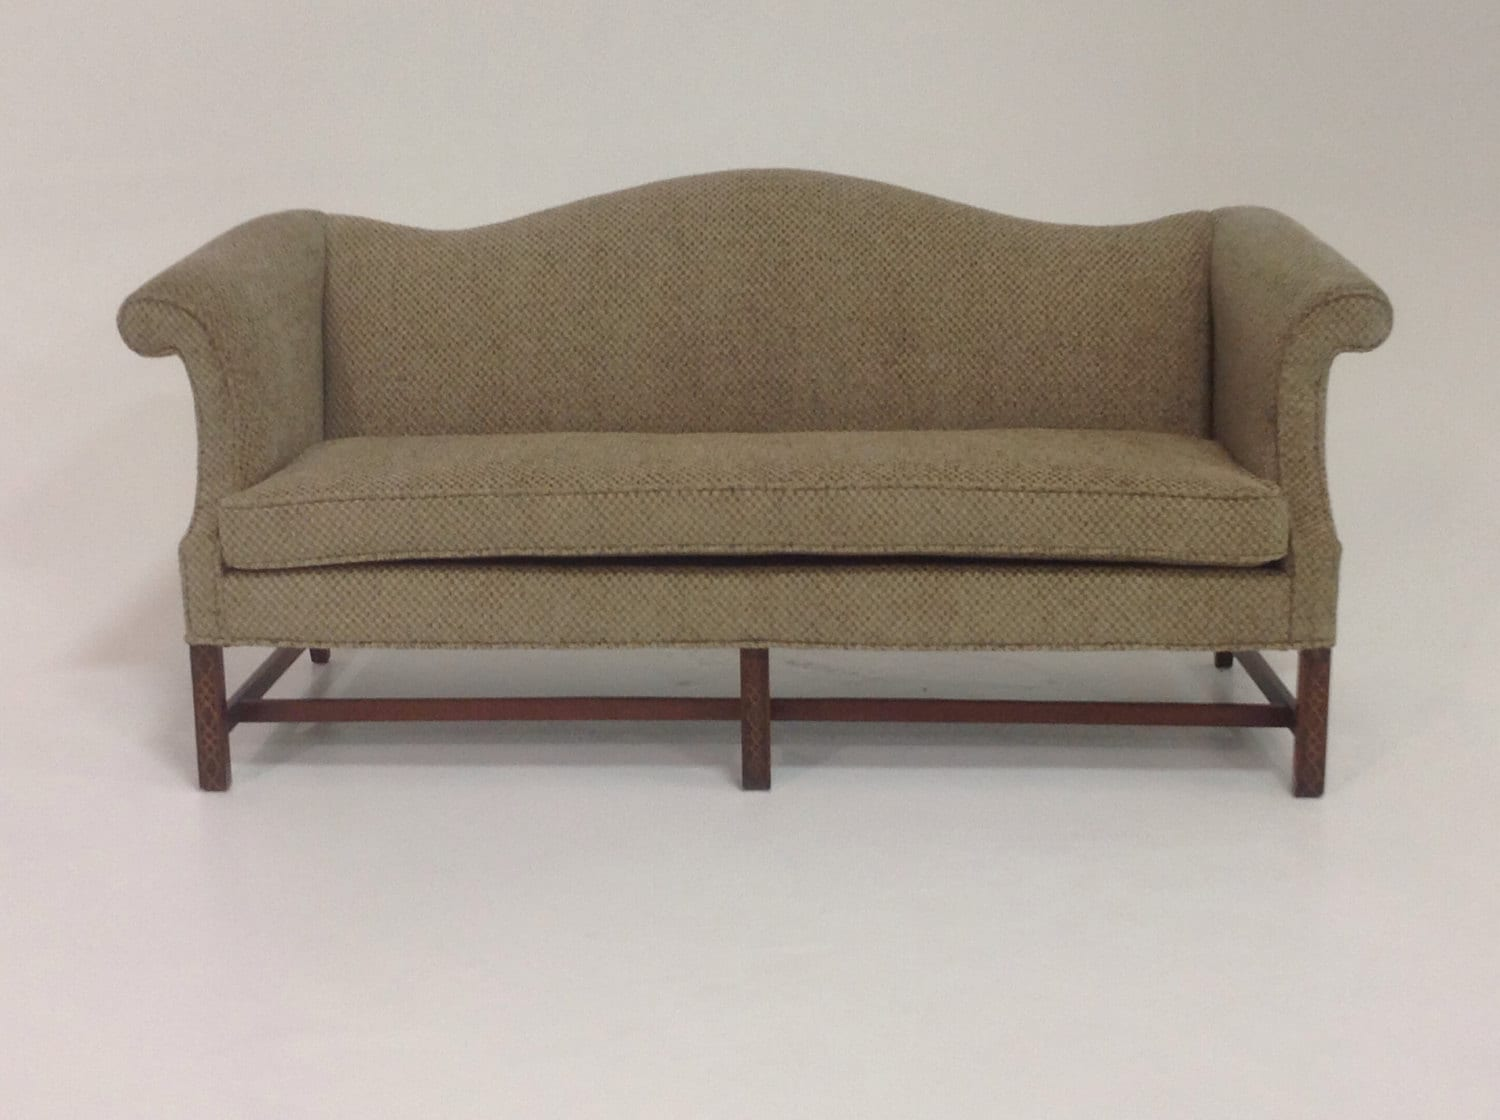 vintage camel back sofa ashley montgomery 2 cuerpos cafe antique by designerfwarehouse on etsy